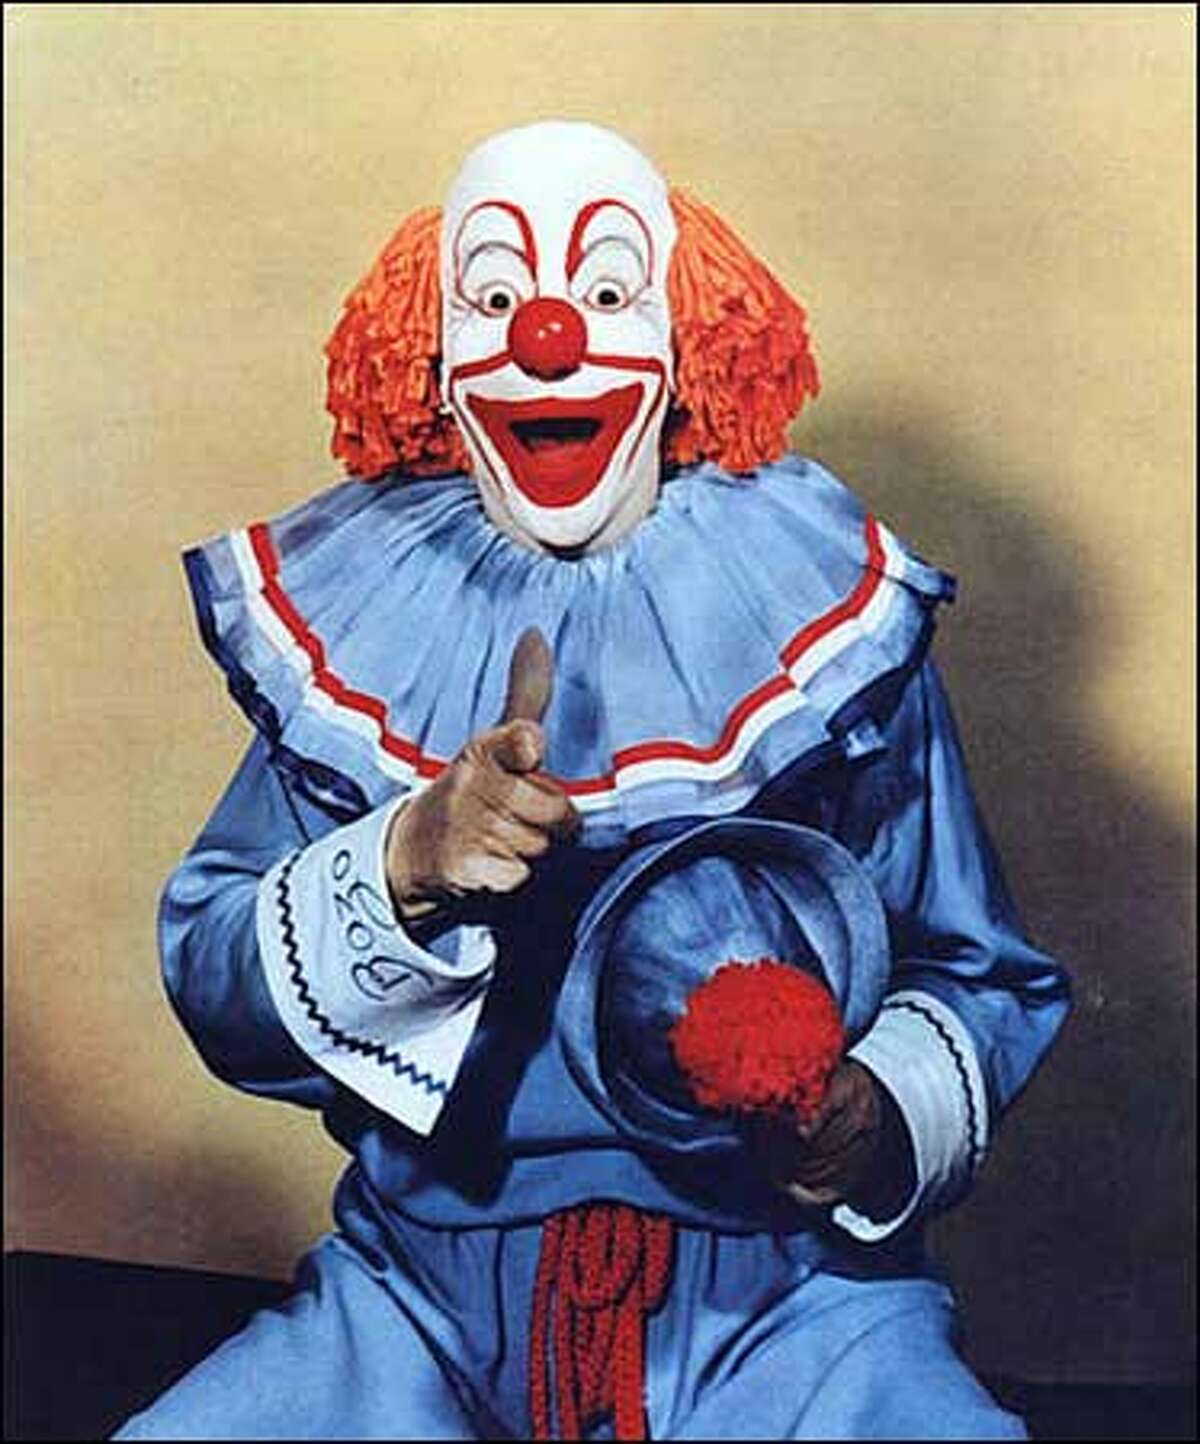 """Vance """"Pinto"""" Colvig portrays Bozo the Clown in this undated file photo. For years Larry Harmon claimed to have created the character. Now the International Clown Hall of Fame is formally endorsing a different version: Capitol Records executive Alan Livingston created Bozo for recordings in 1946, and the late Colvig was the first person to play the clown. On Friday, the hall is posthumously inducting Colvig as the first Bozo. (AP Photo/Photo courtesy International Clown Hall of Fame)"""